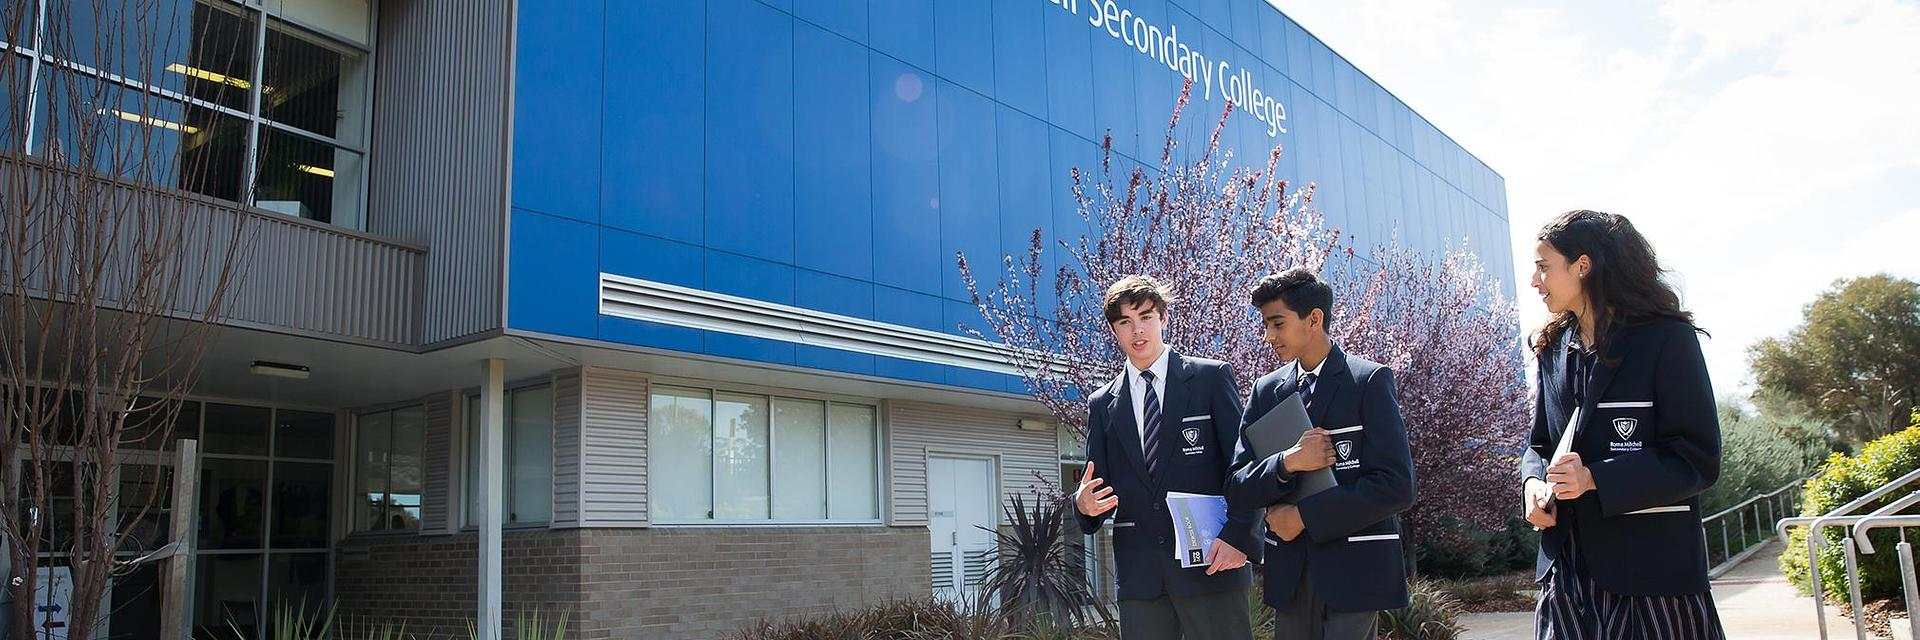 Roma Mitchell Secondary College banner image